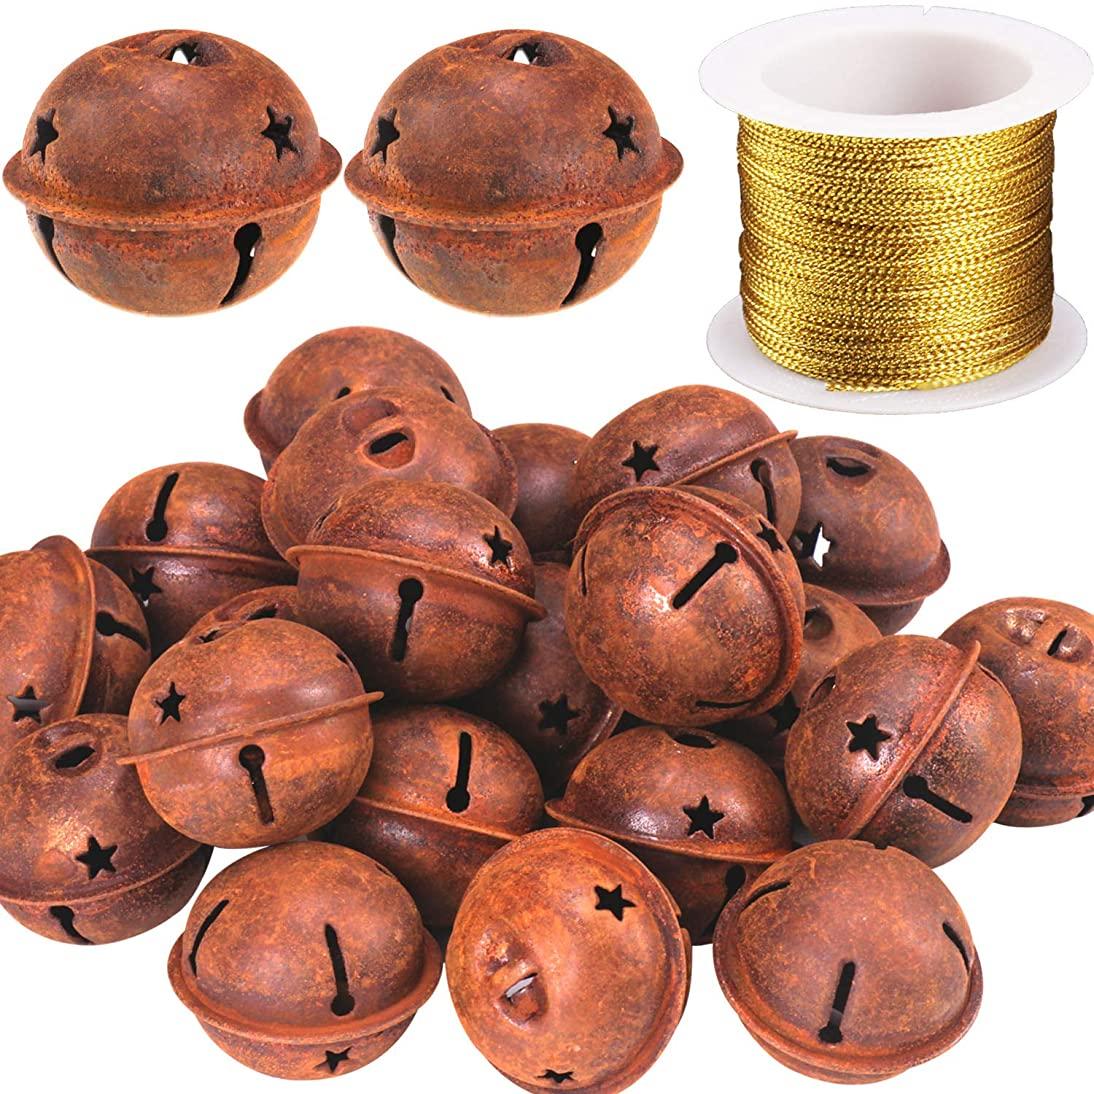 Mayam 24 Pieces Rustic Rusty Jingle Bells with Star Cutouts Christmas Craft Bells with A roll of Gold Thread for Festival Decorations (1.58inch)